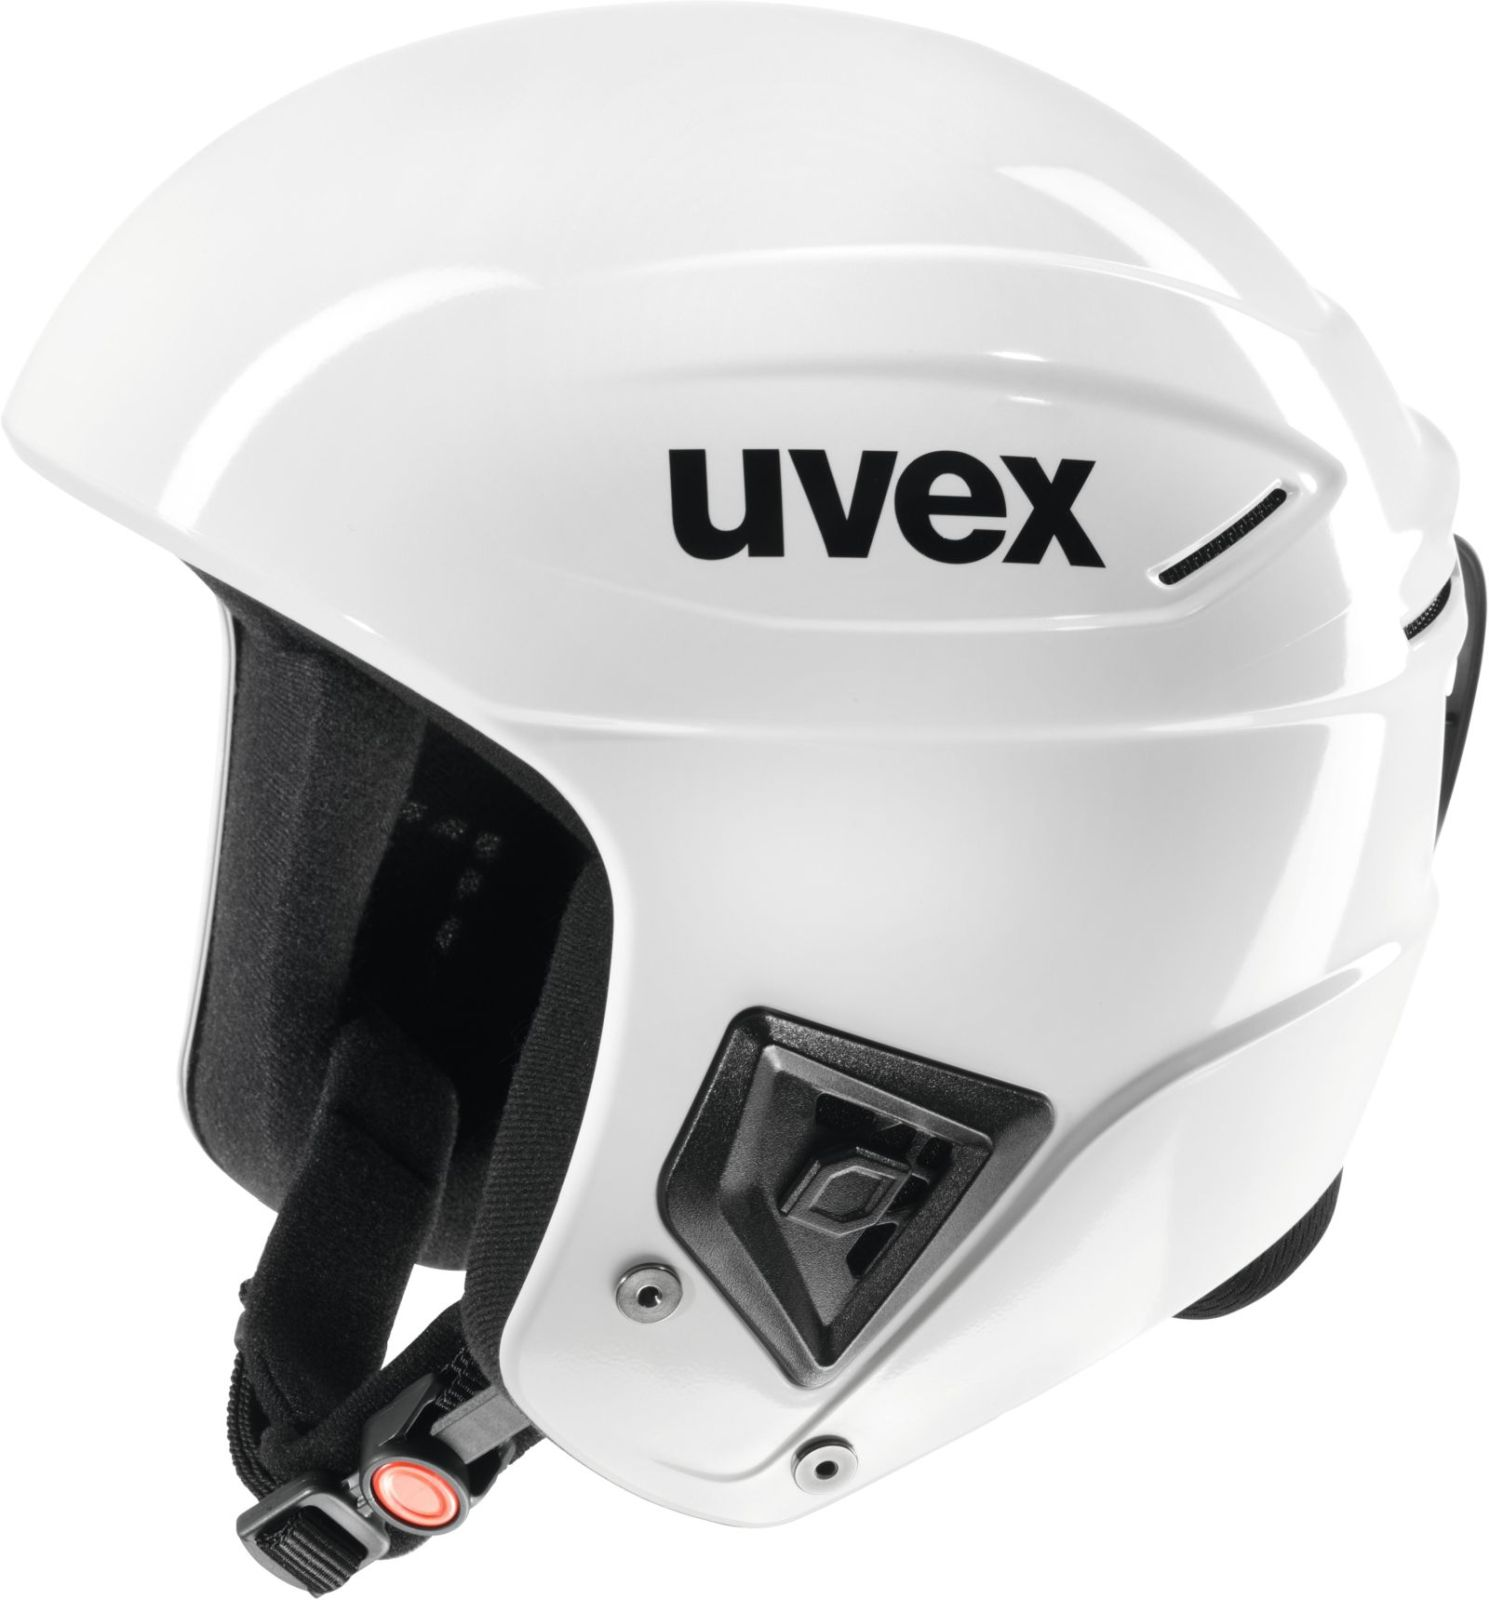 Uvex Race + - all white 53-54